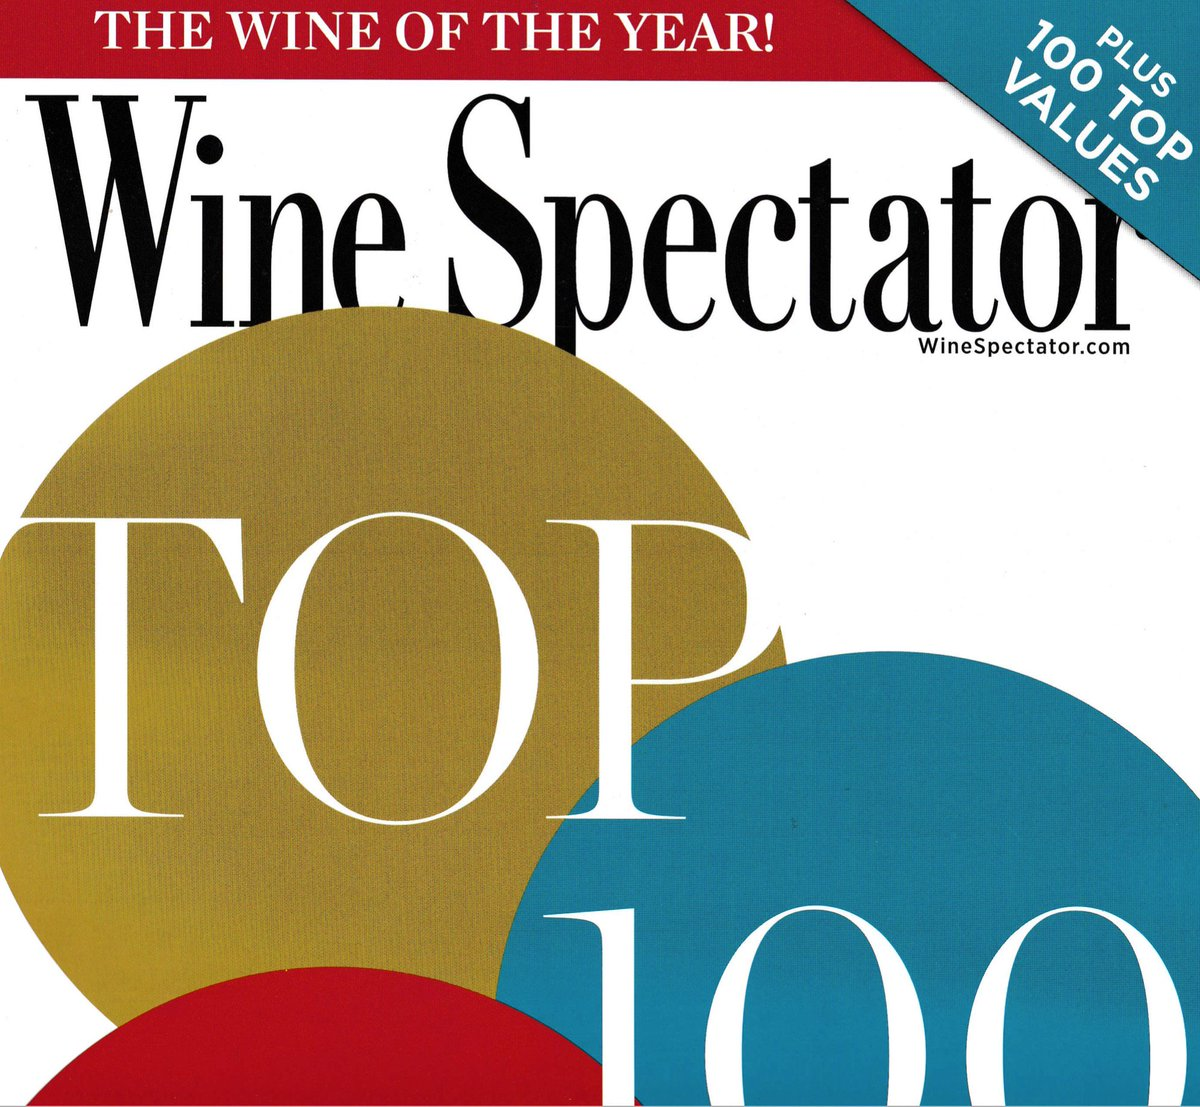 Casillero del Diablo - honored to be among @WineSpectator 's Top 100 Values – Great Wines for $20 or Less https://t.co/vKPKBHRn9c